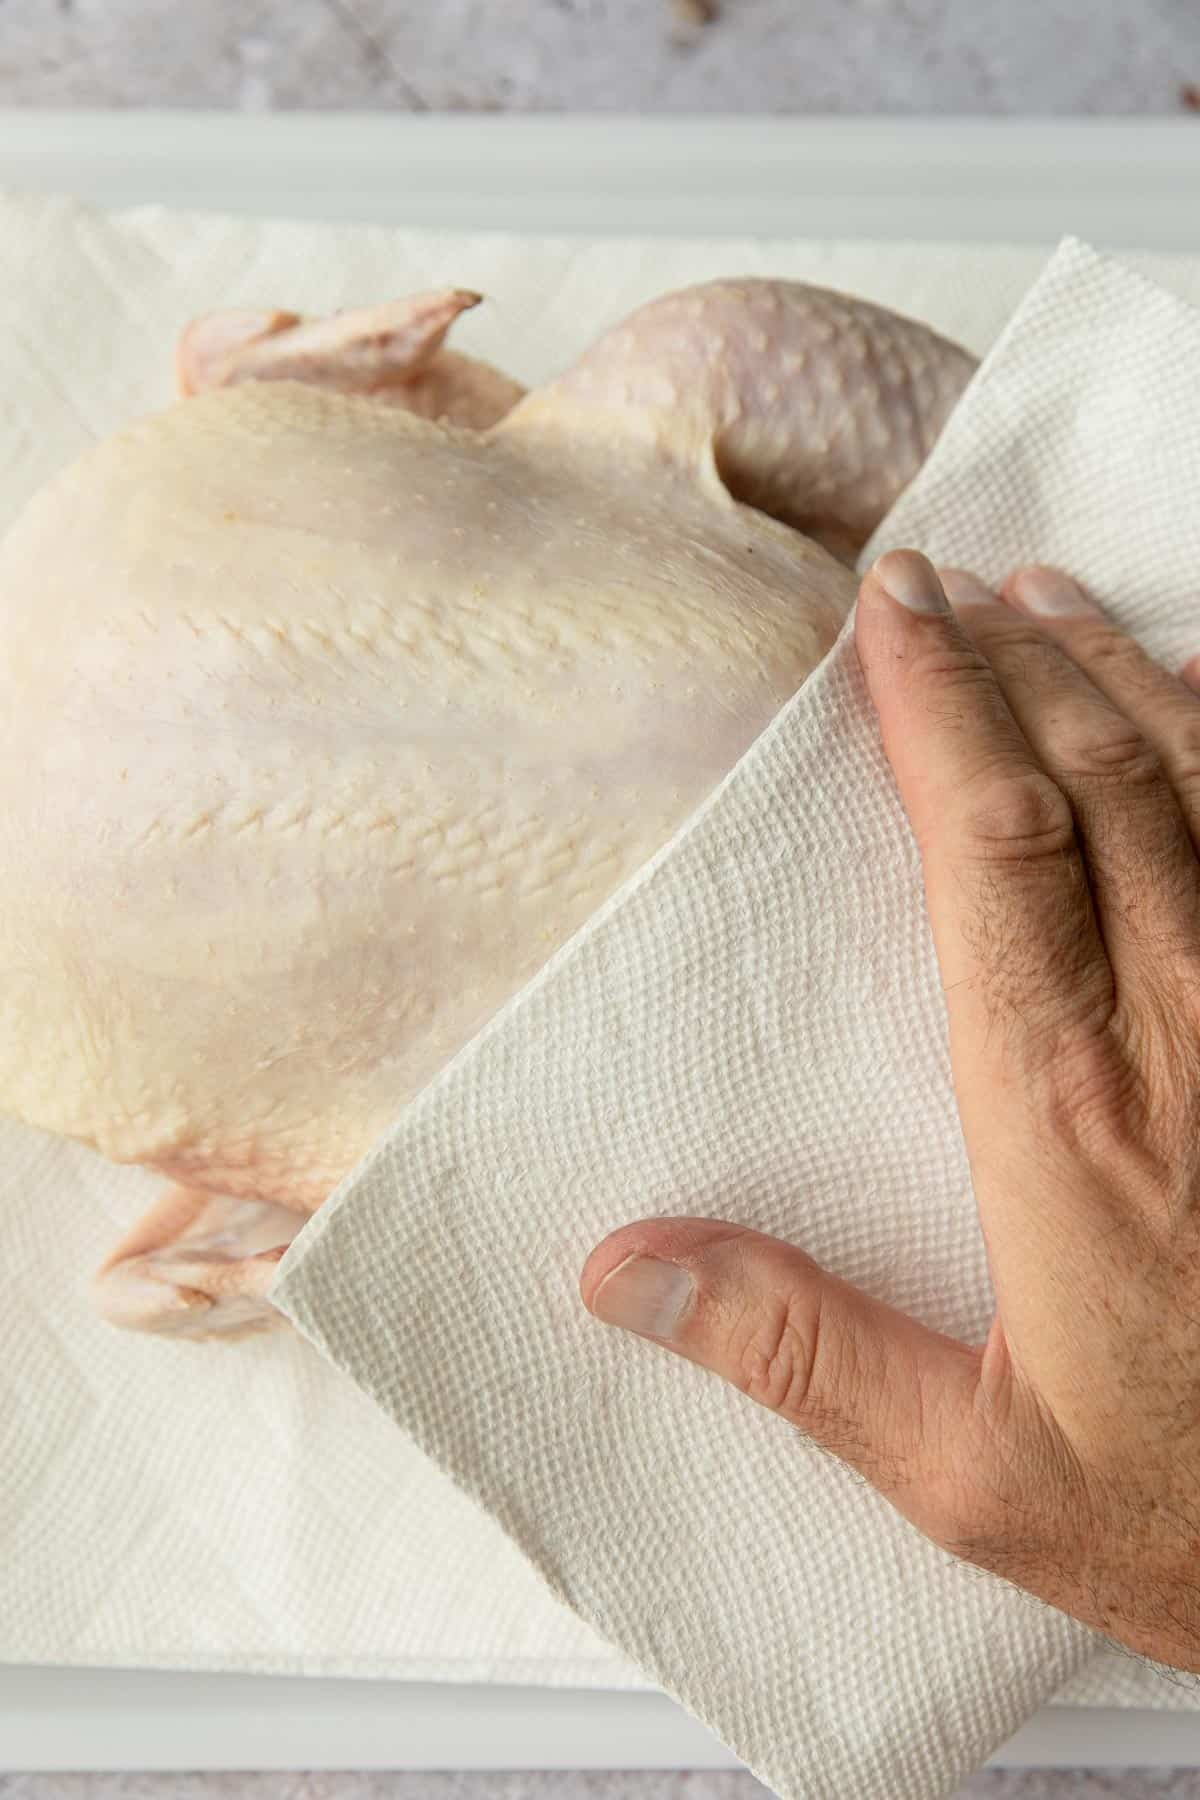 patting a raw chicken dry with paper towels